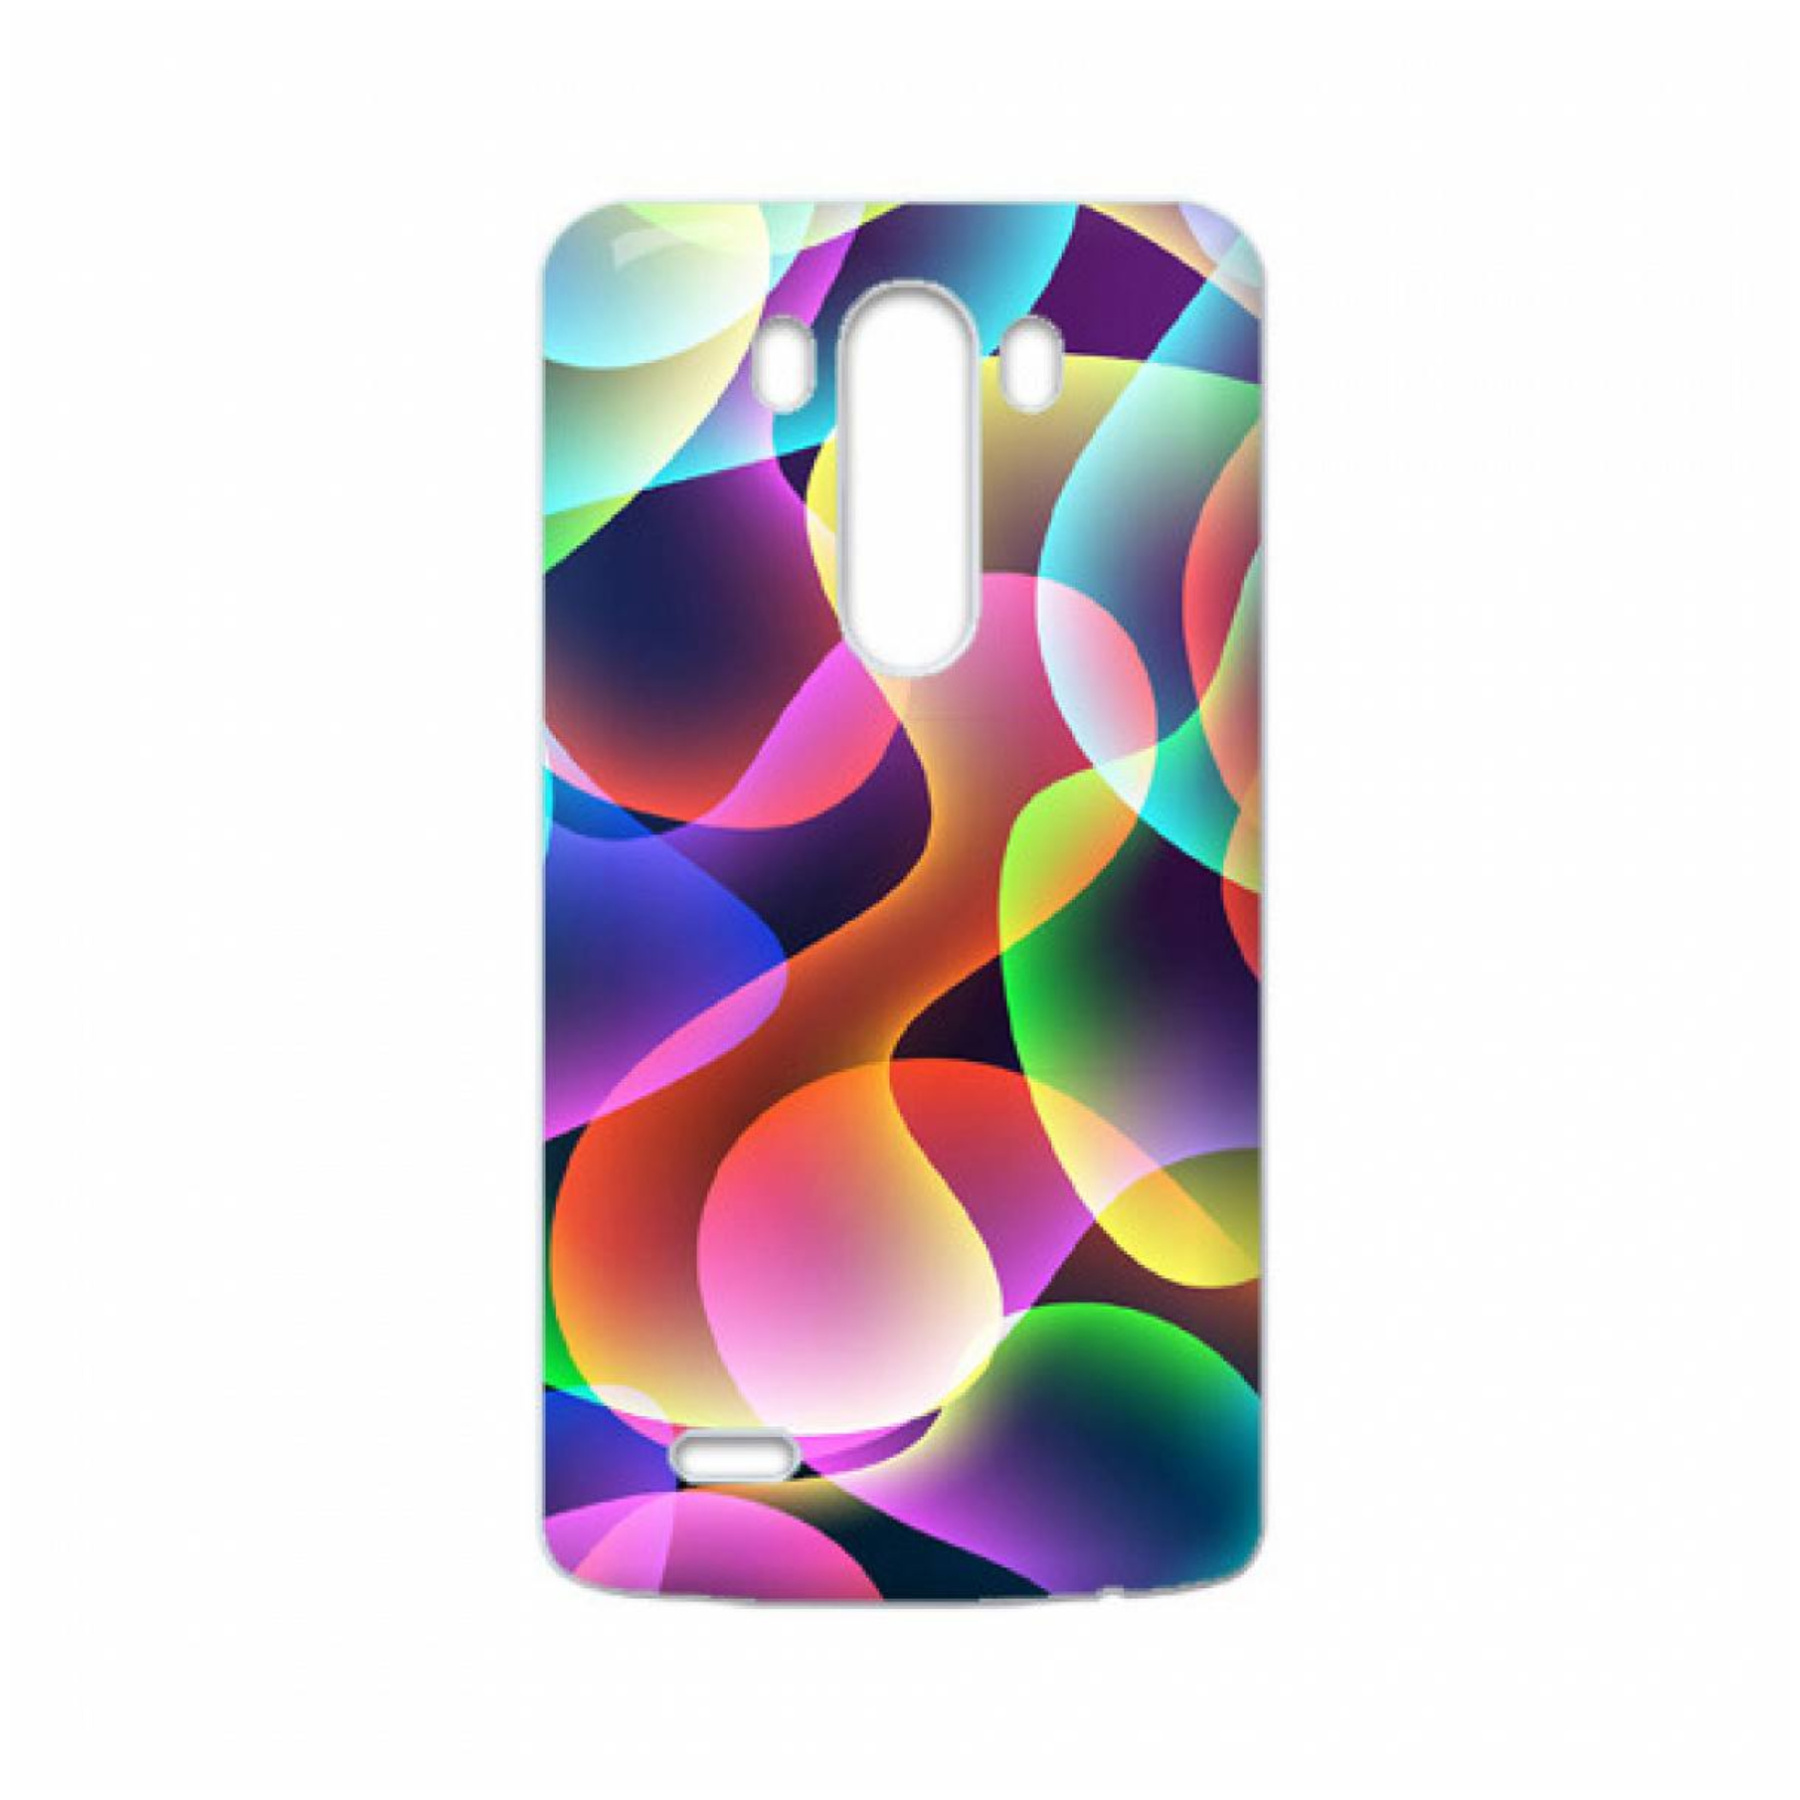 Vibrant Cool Abstract Vector Lg G3 Case Cover